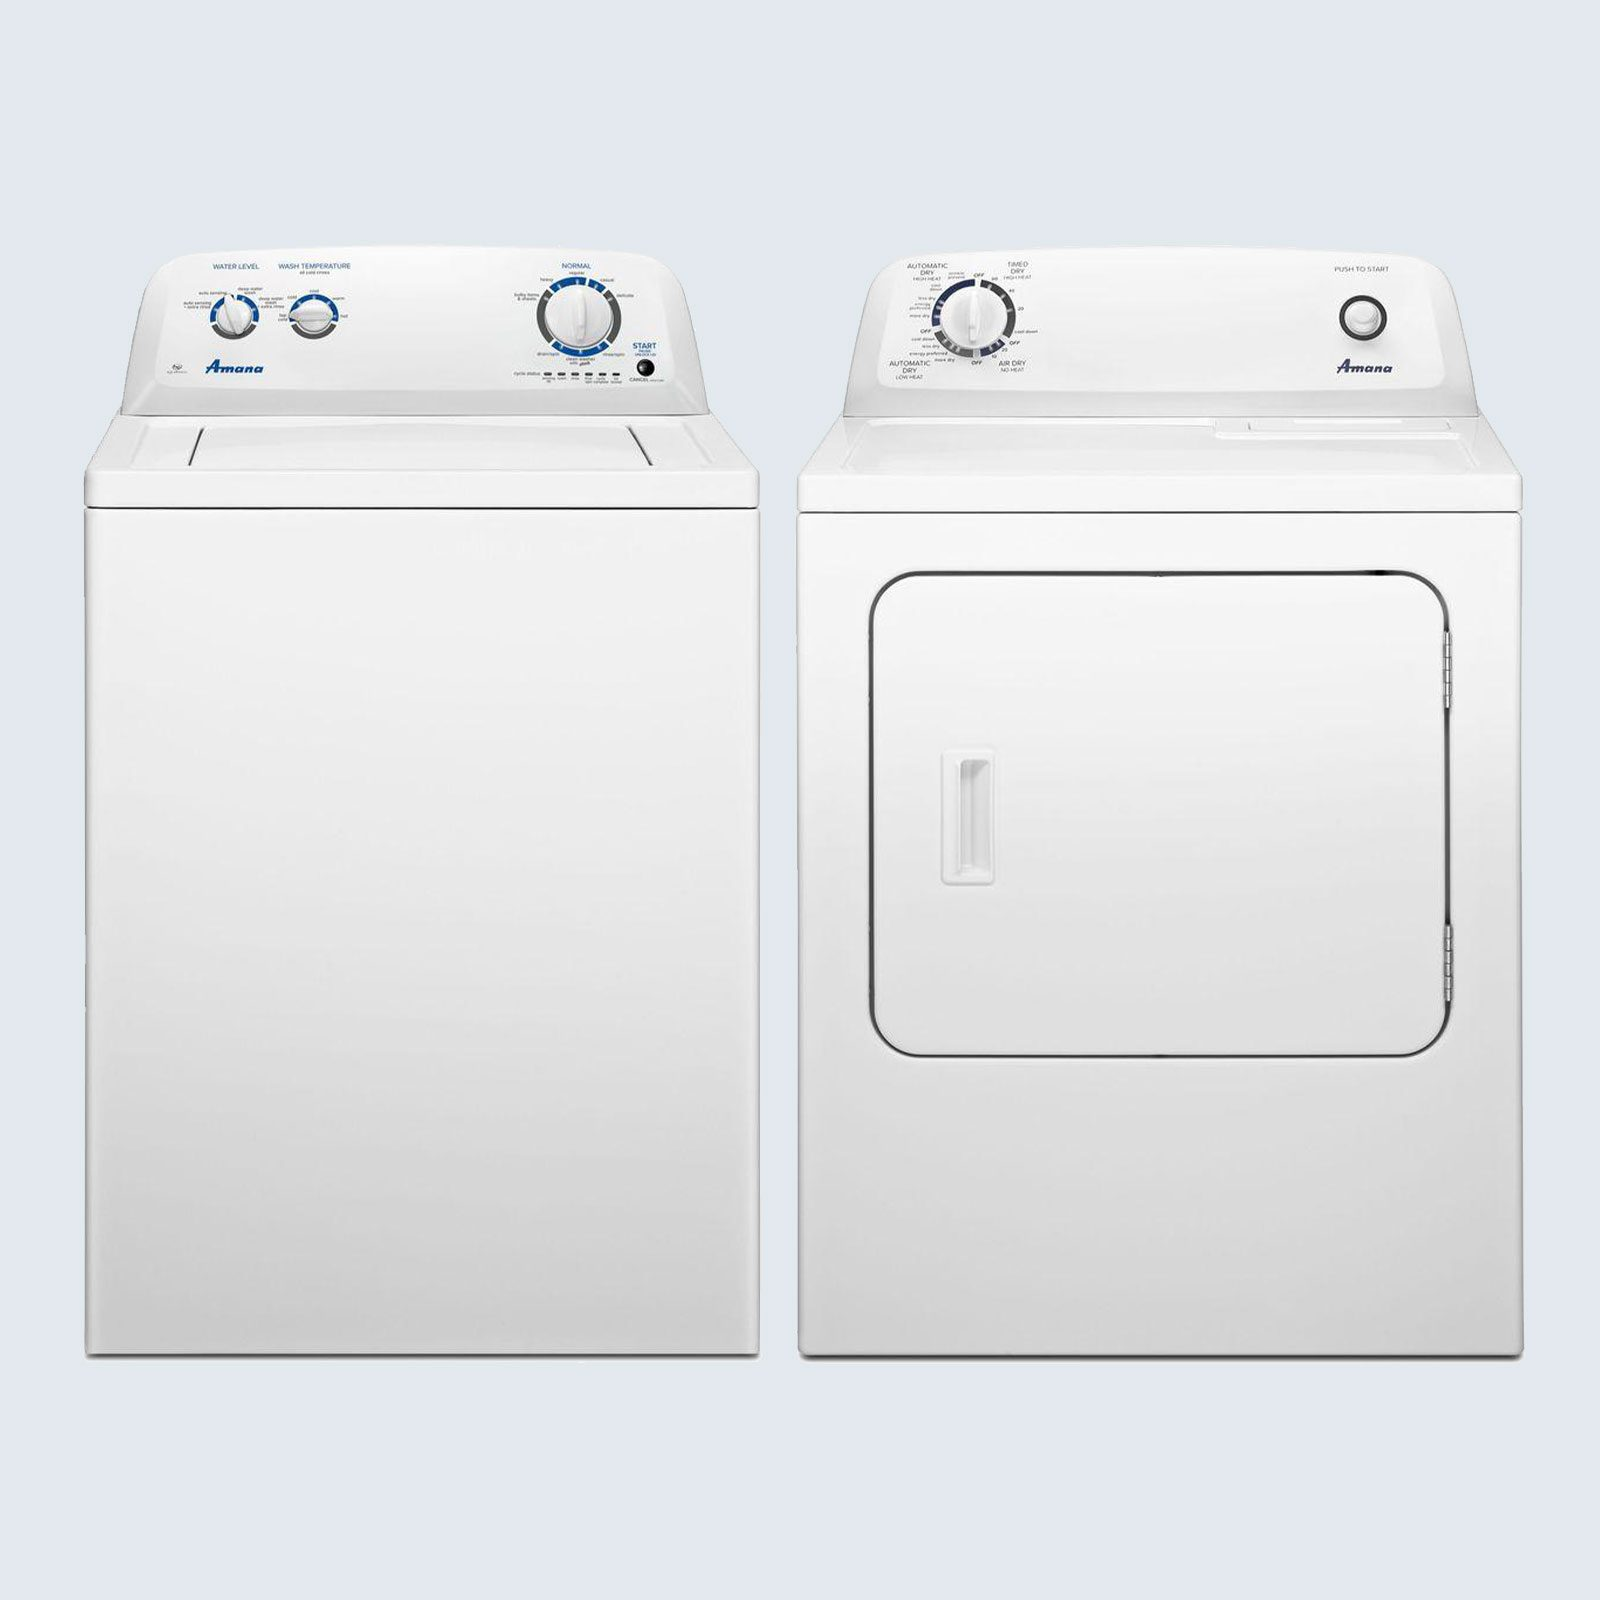 Amana Top Load Washing Machine and Vented Dryer